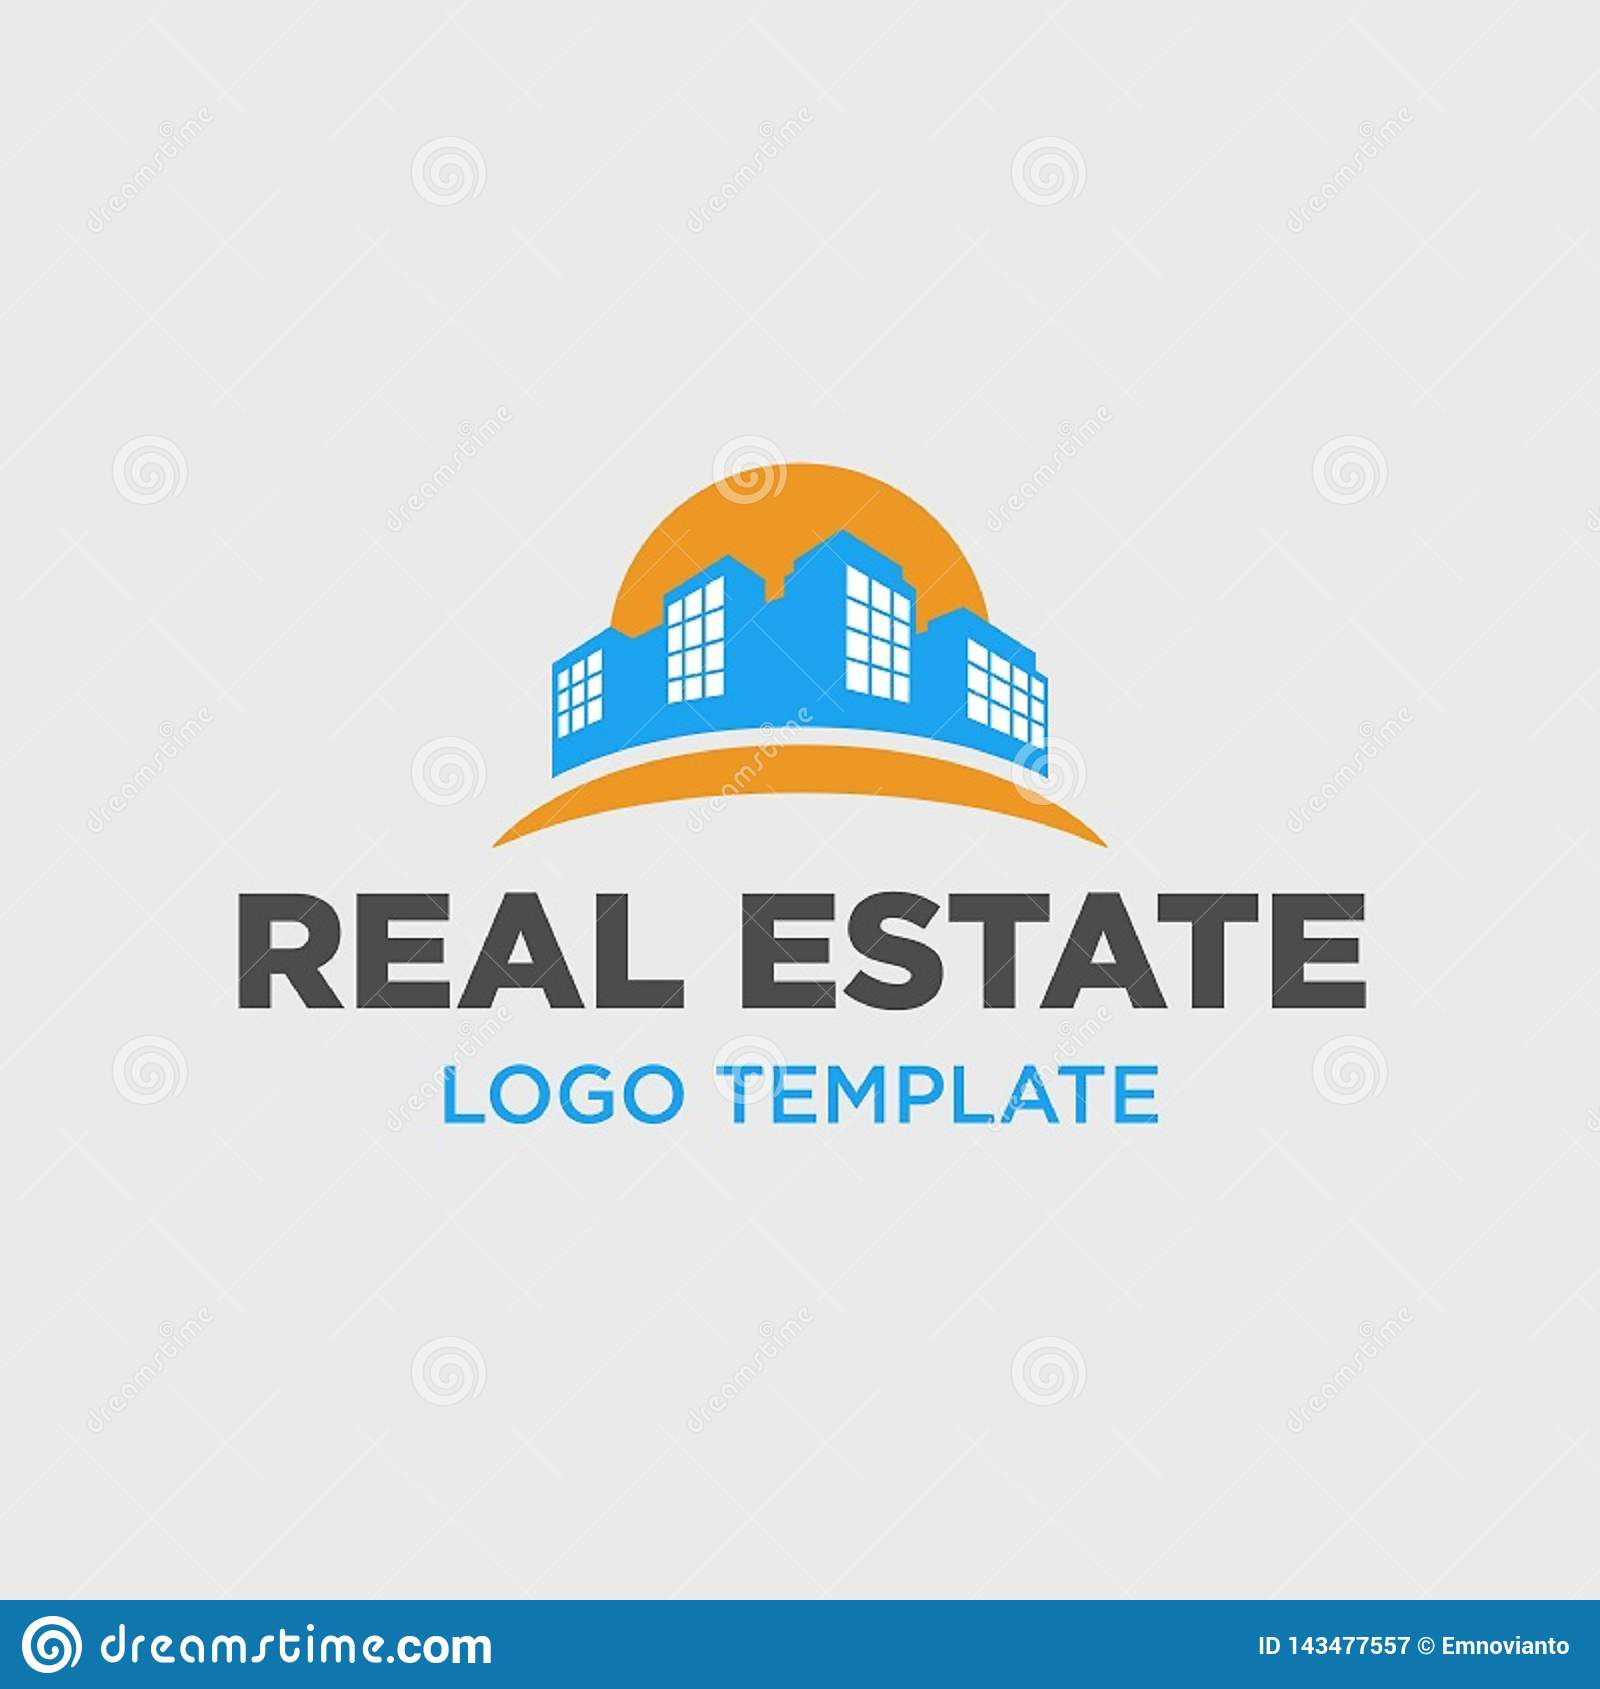 Logo Template for Real Estate Company